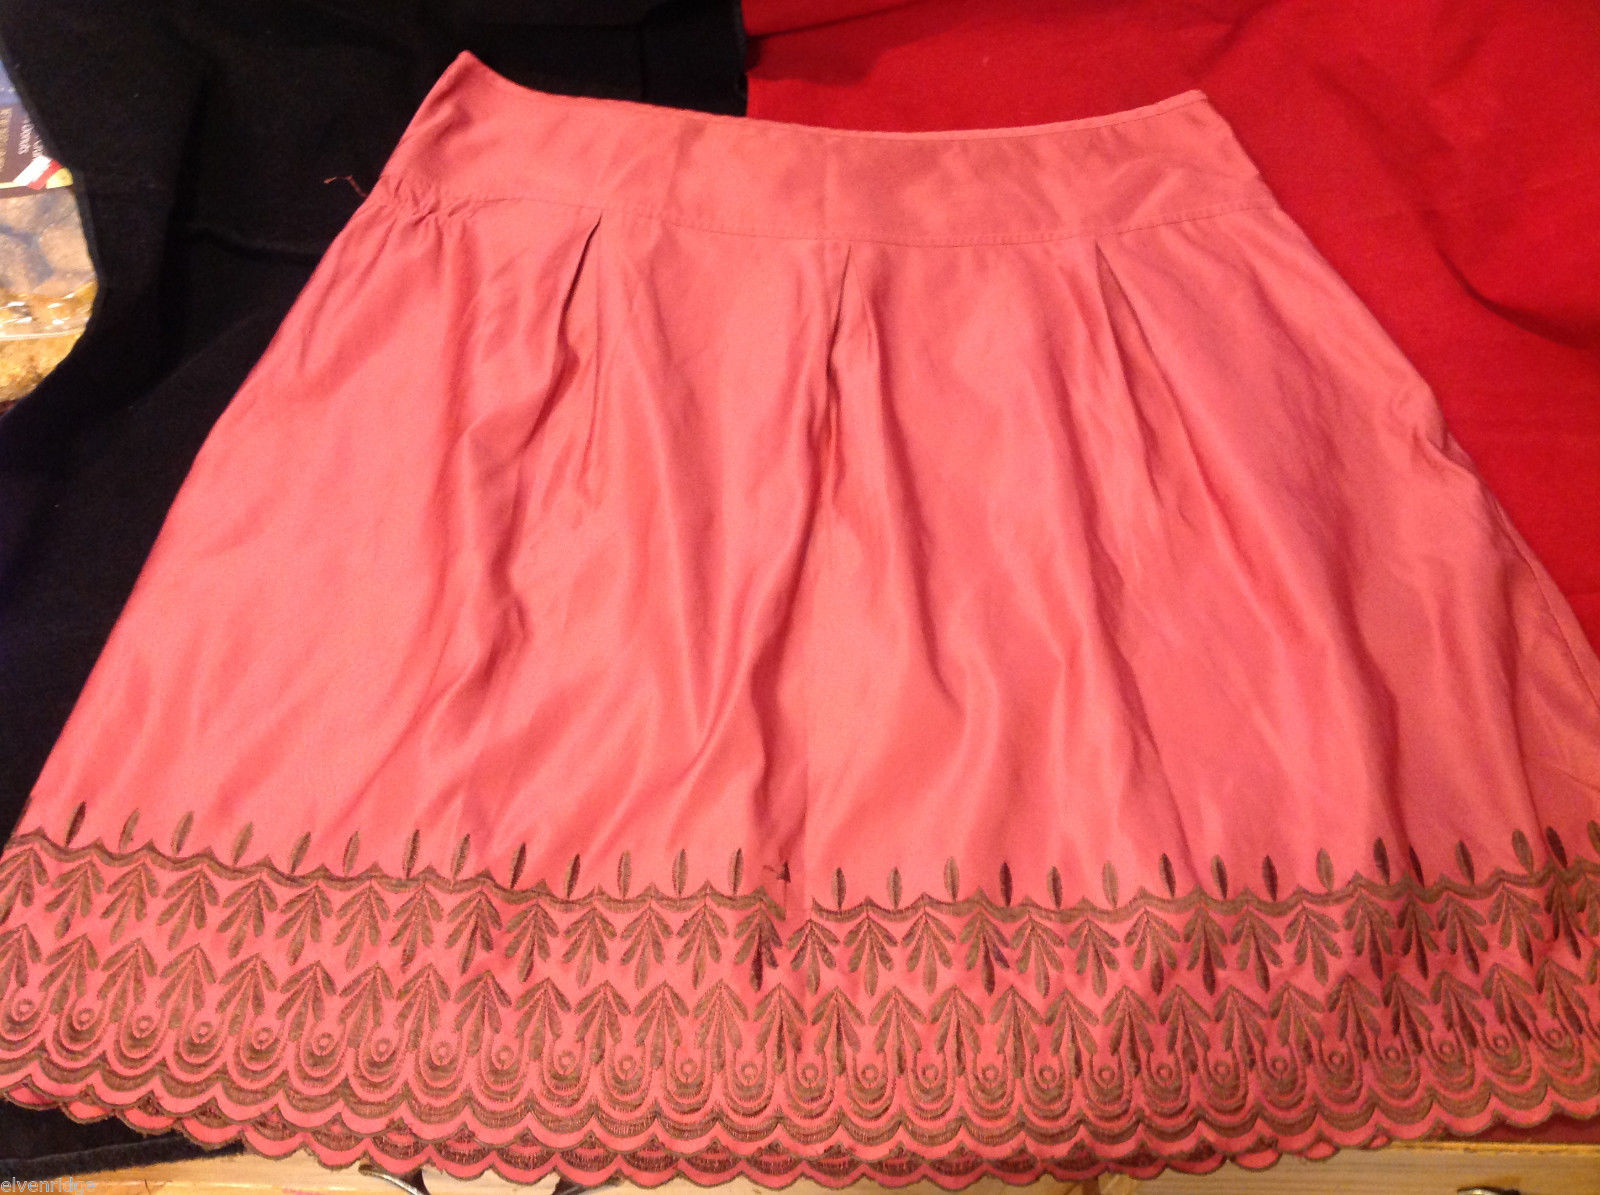 Old Navy Womens Low Rise Waist Pink Skirt with Embroidered Edge Pattern size 16